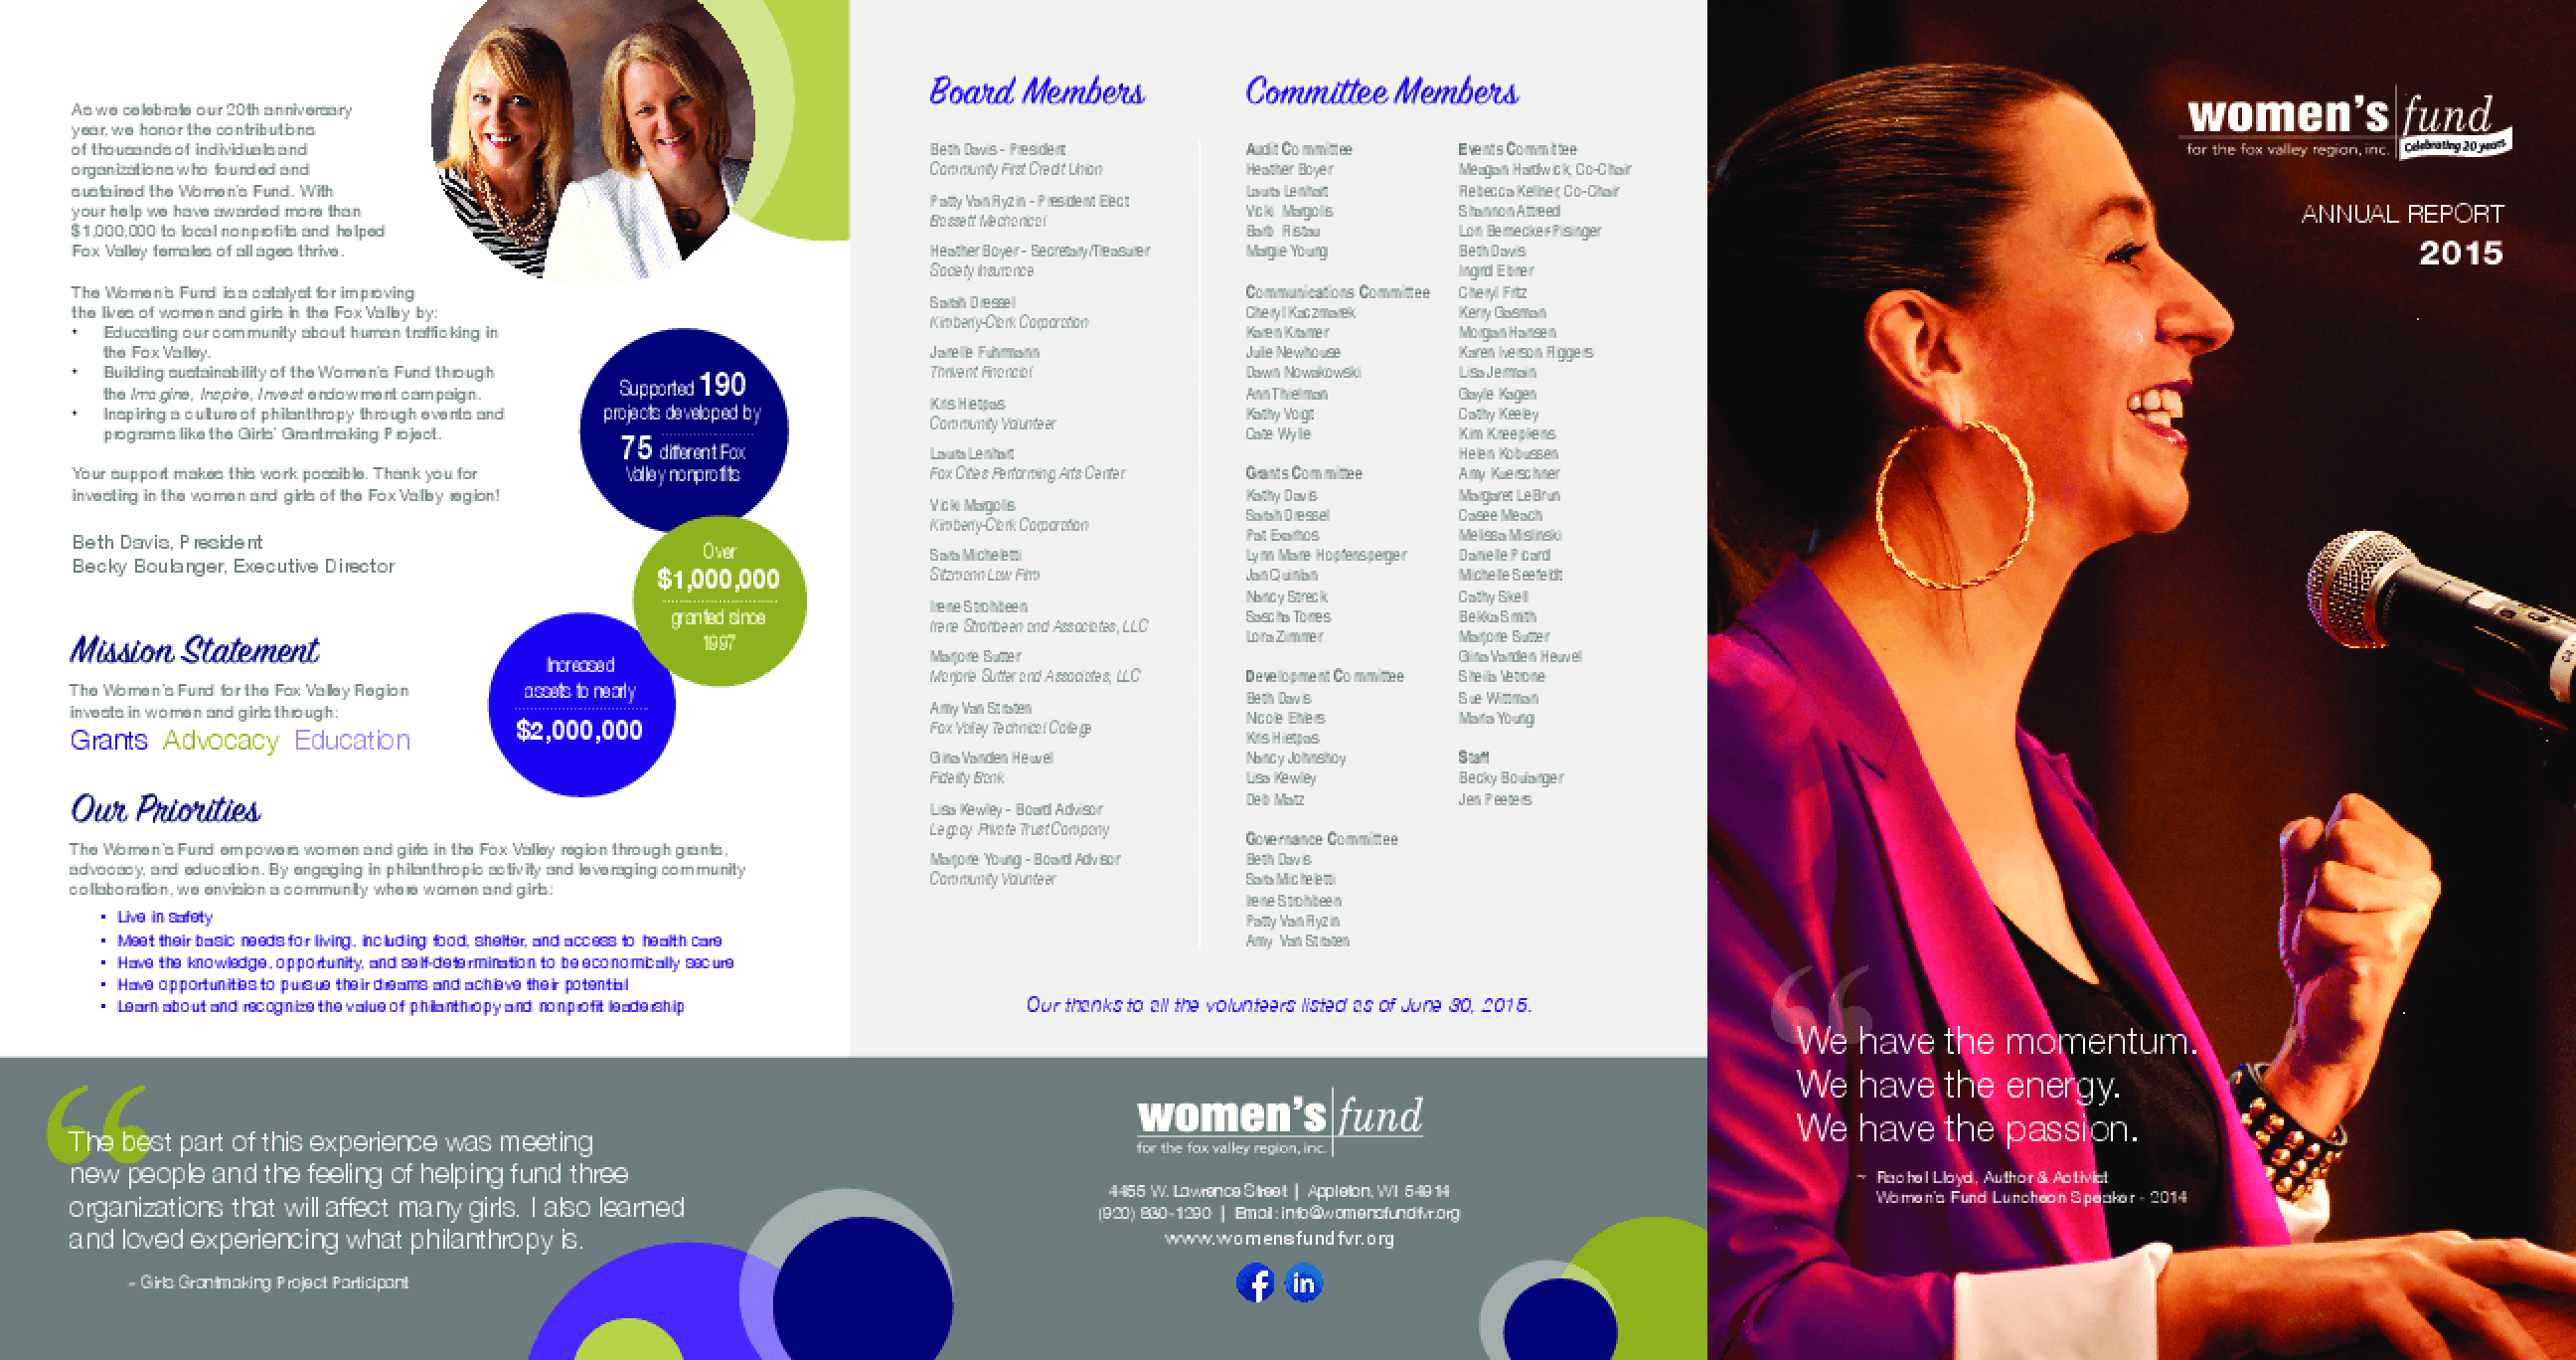 Women's Fund for the Fox Valley Region, Annual Report 2015